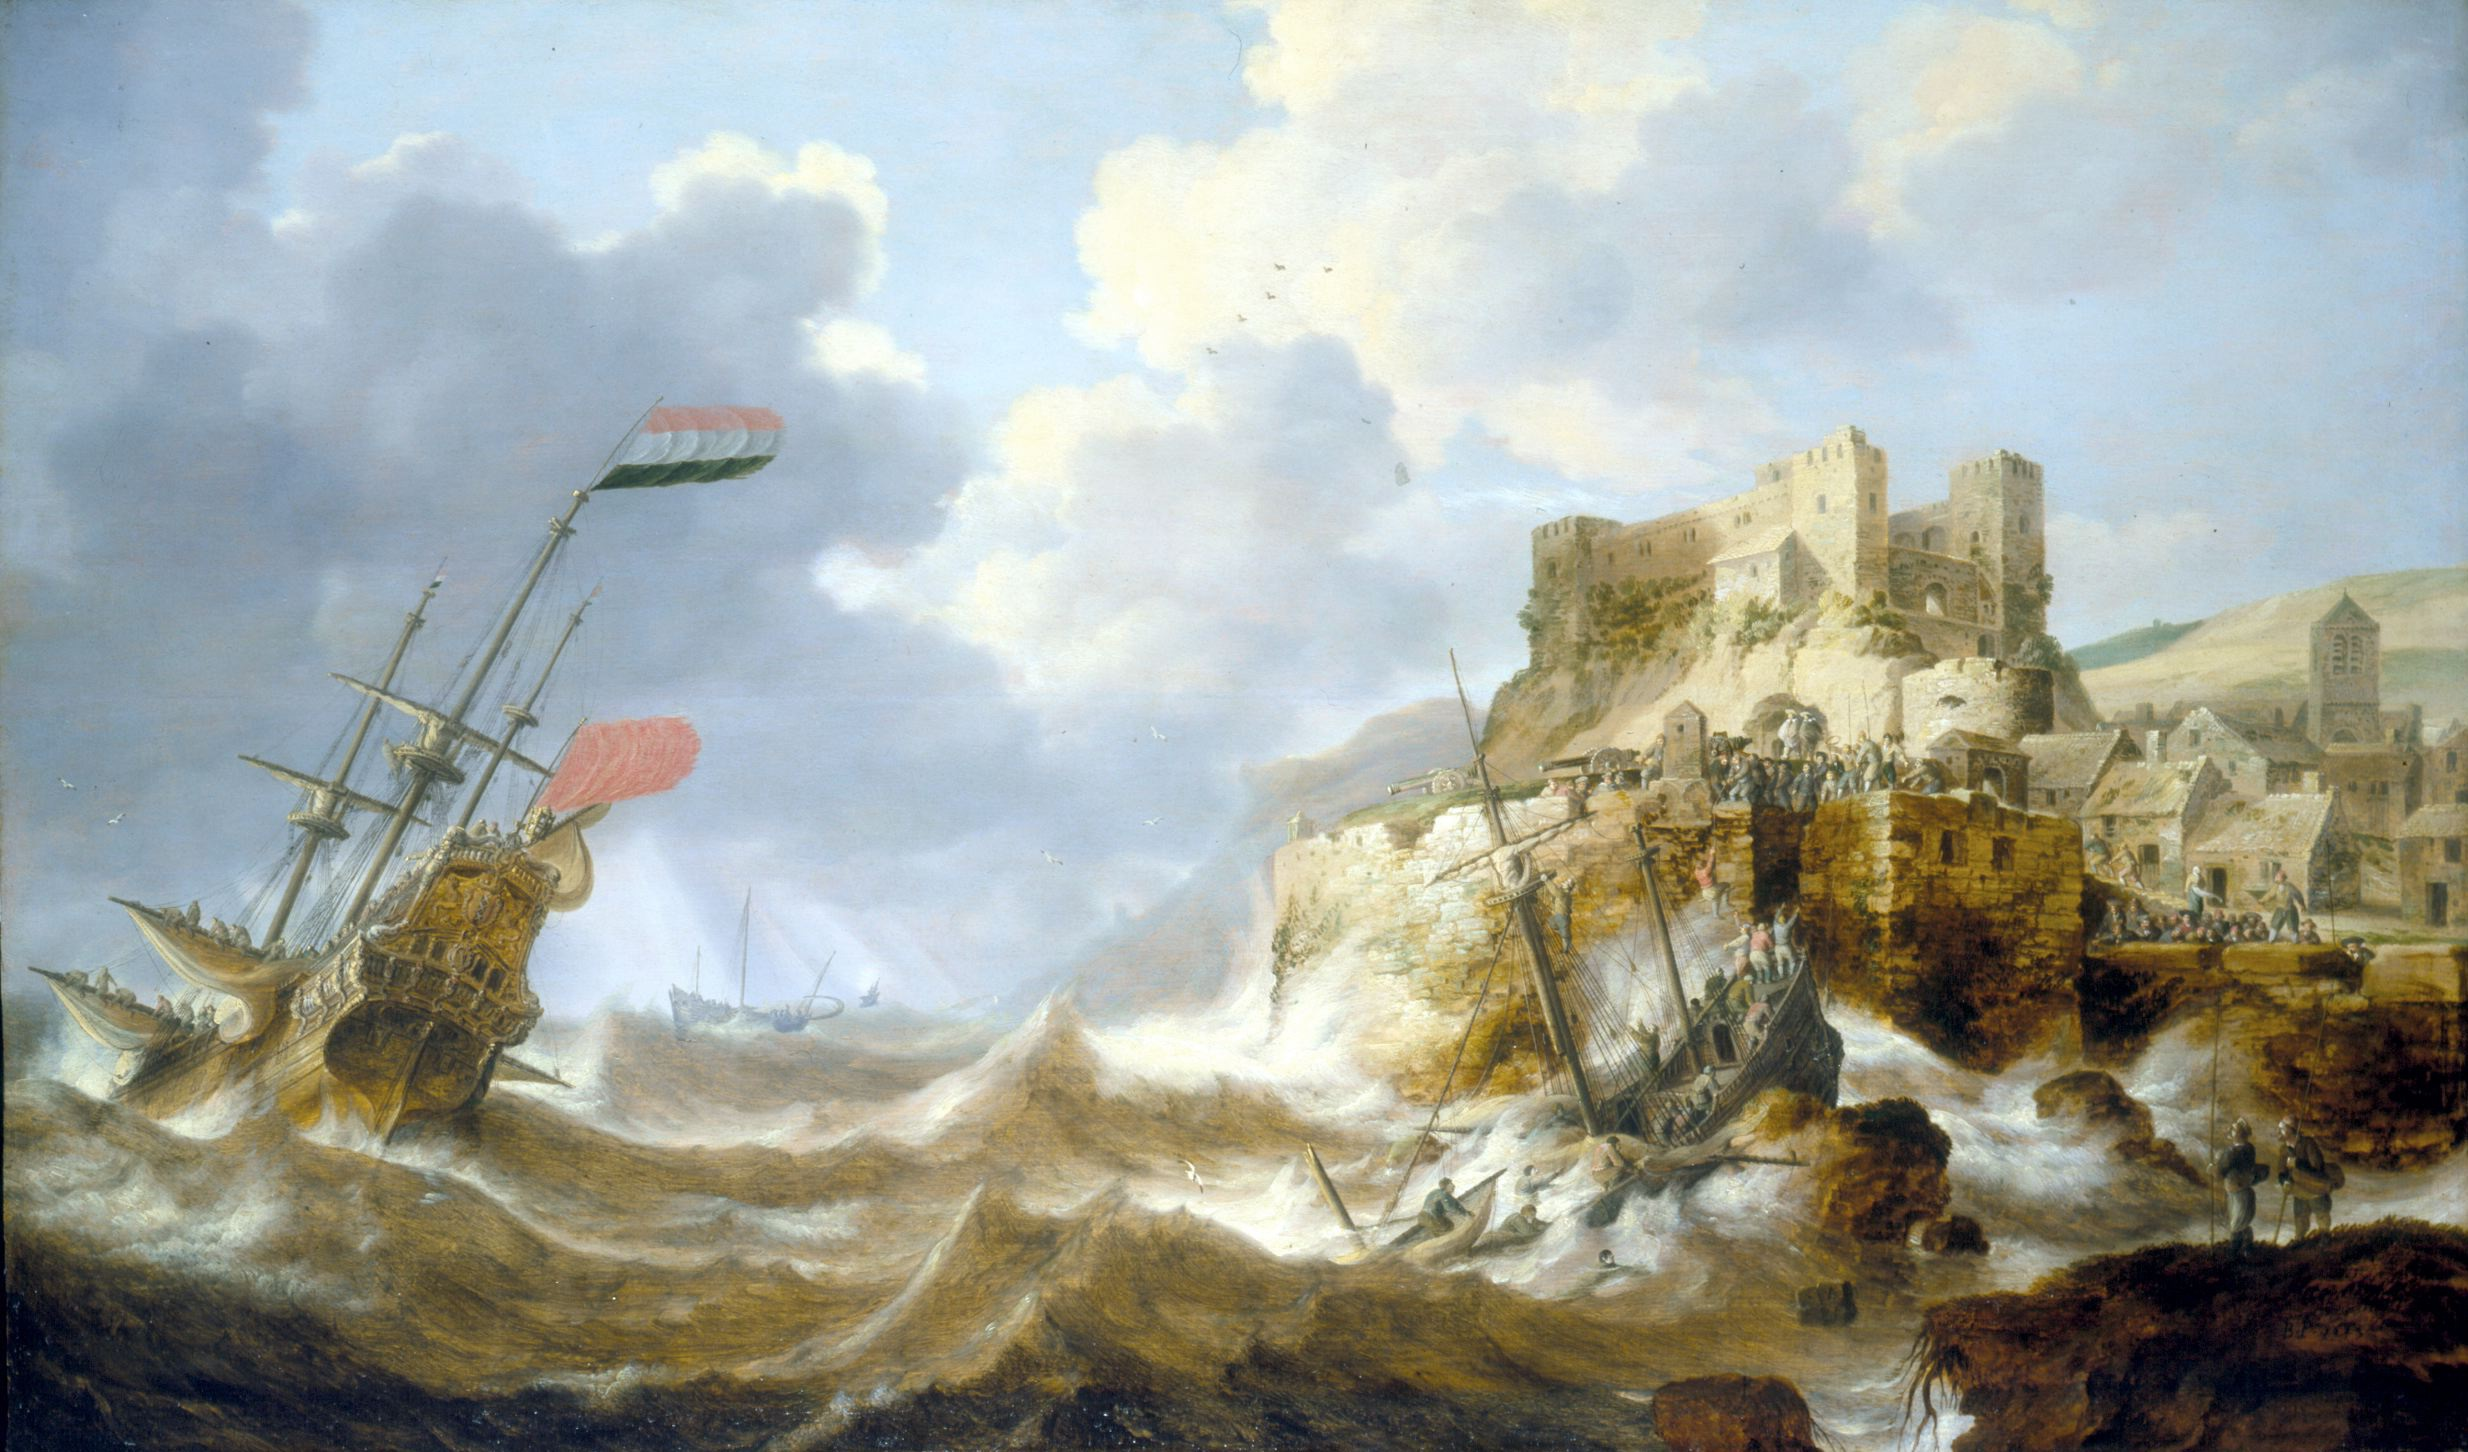 Bonaventura Peeters the Elder (1614-1652), A Coastal Landscape with a Three-Master in distress and a Shipwreck by a Fortified Town, Signed with initials and dated 'G.P. 1643'